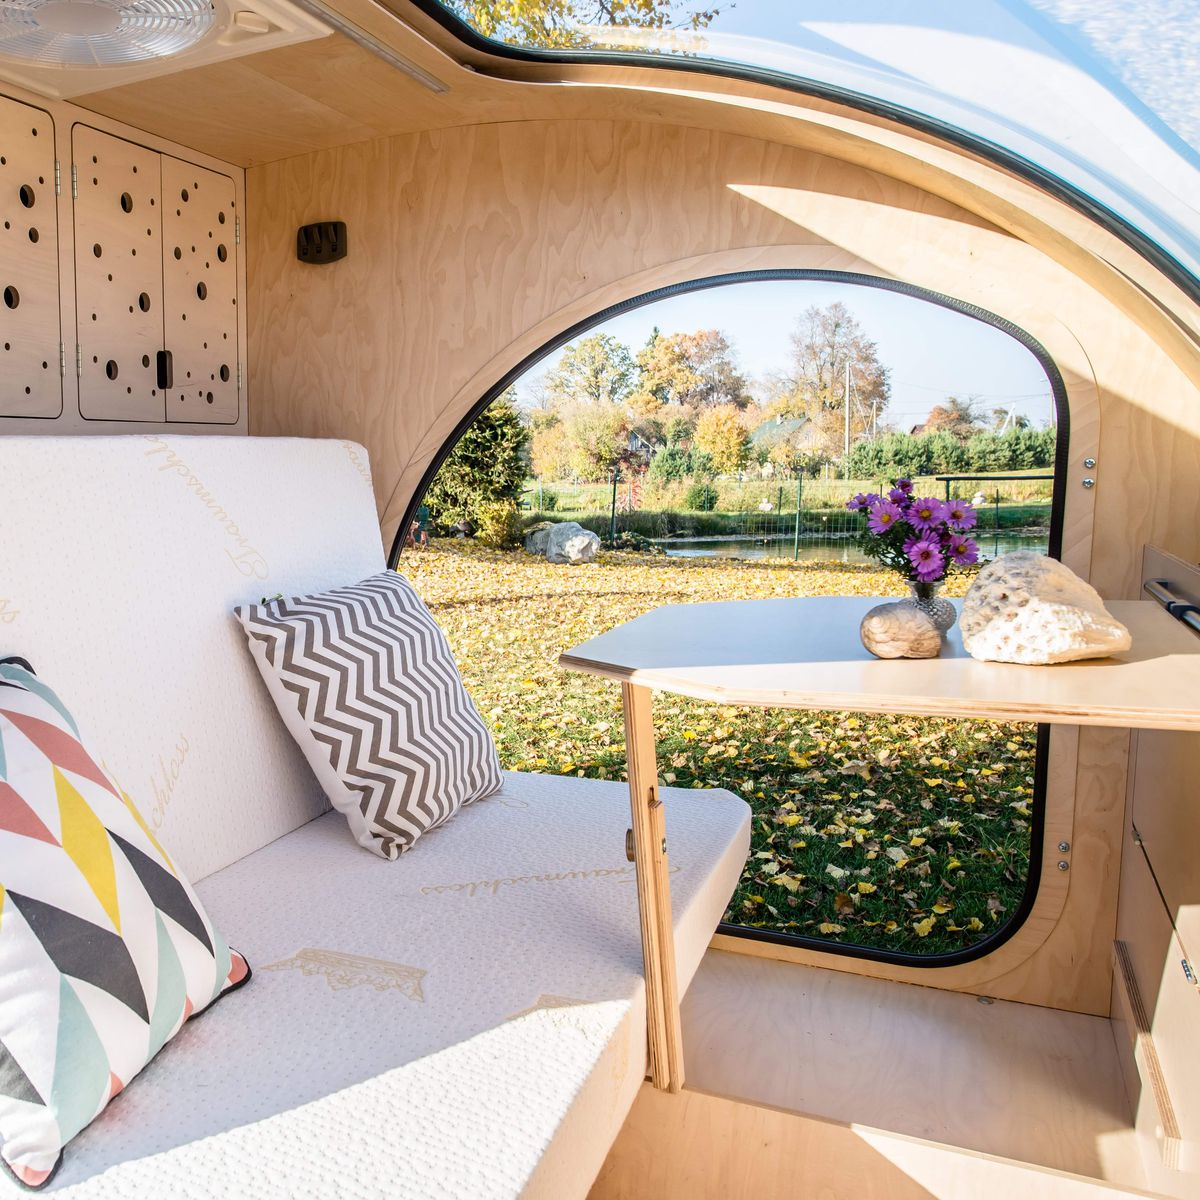 Colorful camper trailer sleeps a family in style - Curbed